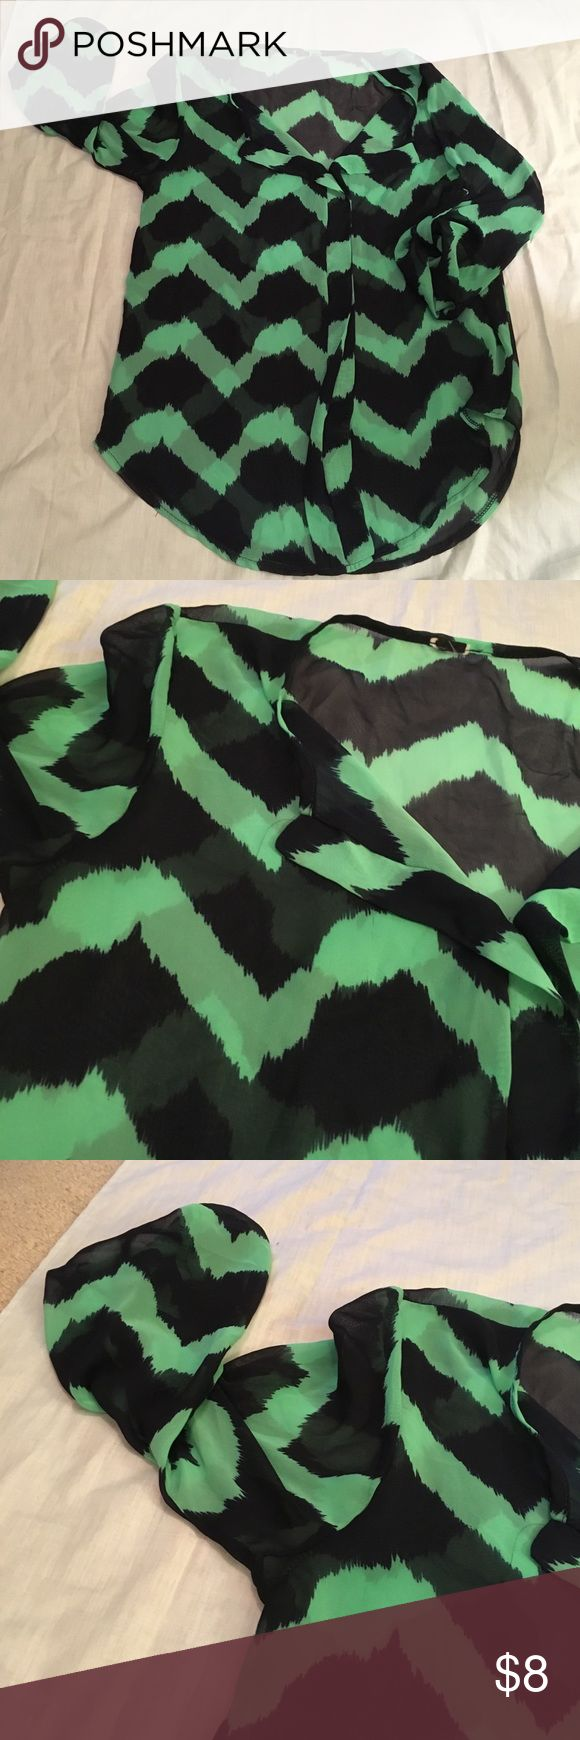 Chevron Blouse Green and Navy chevron Blouse. Fabric is somewhat see through. Tag is blacked out so I cannot see the brand but it is a great quality. Worn once! Tops Blouses